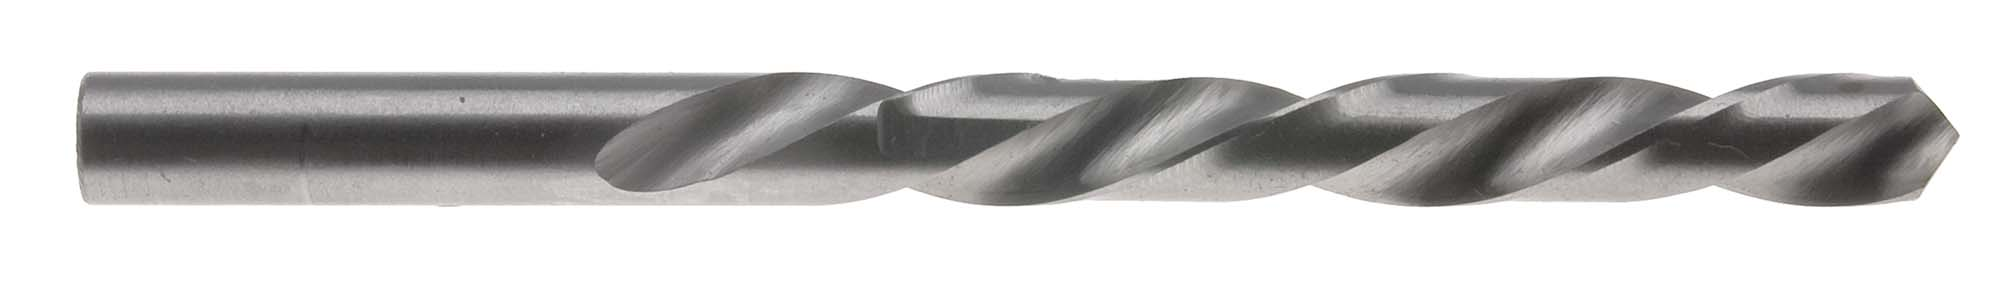 "#59 (.0410"") Left Hand Jobber Drill Bit, High Speed Steel"